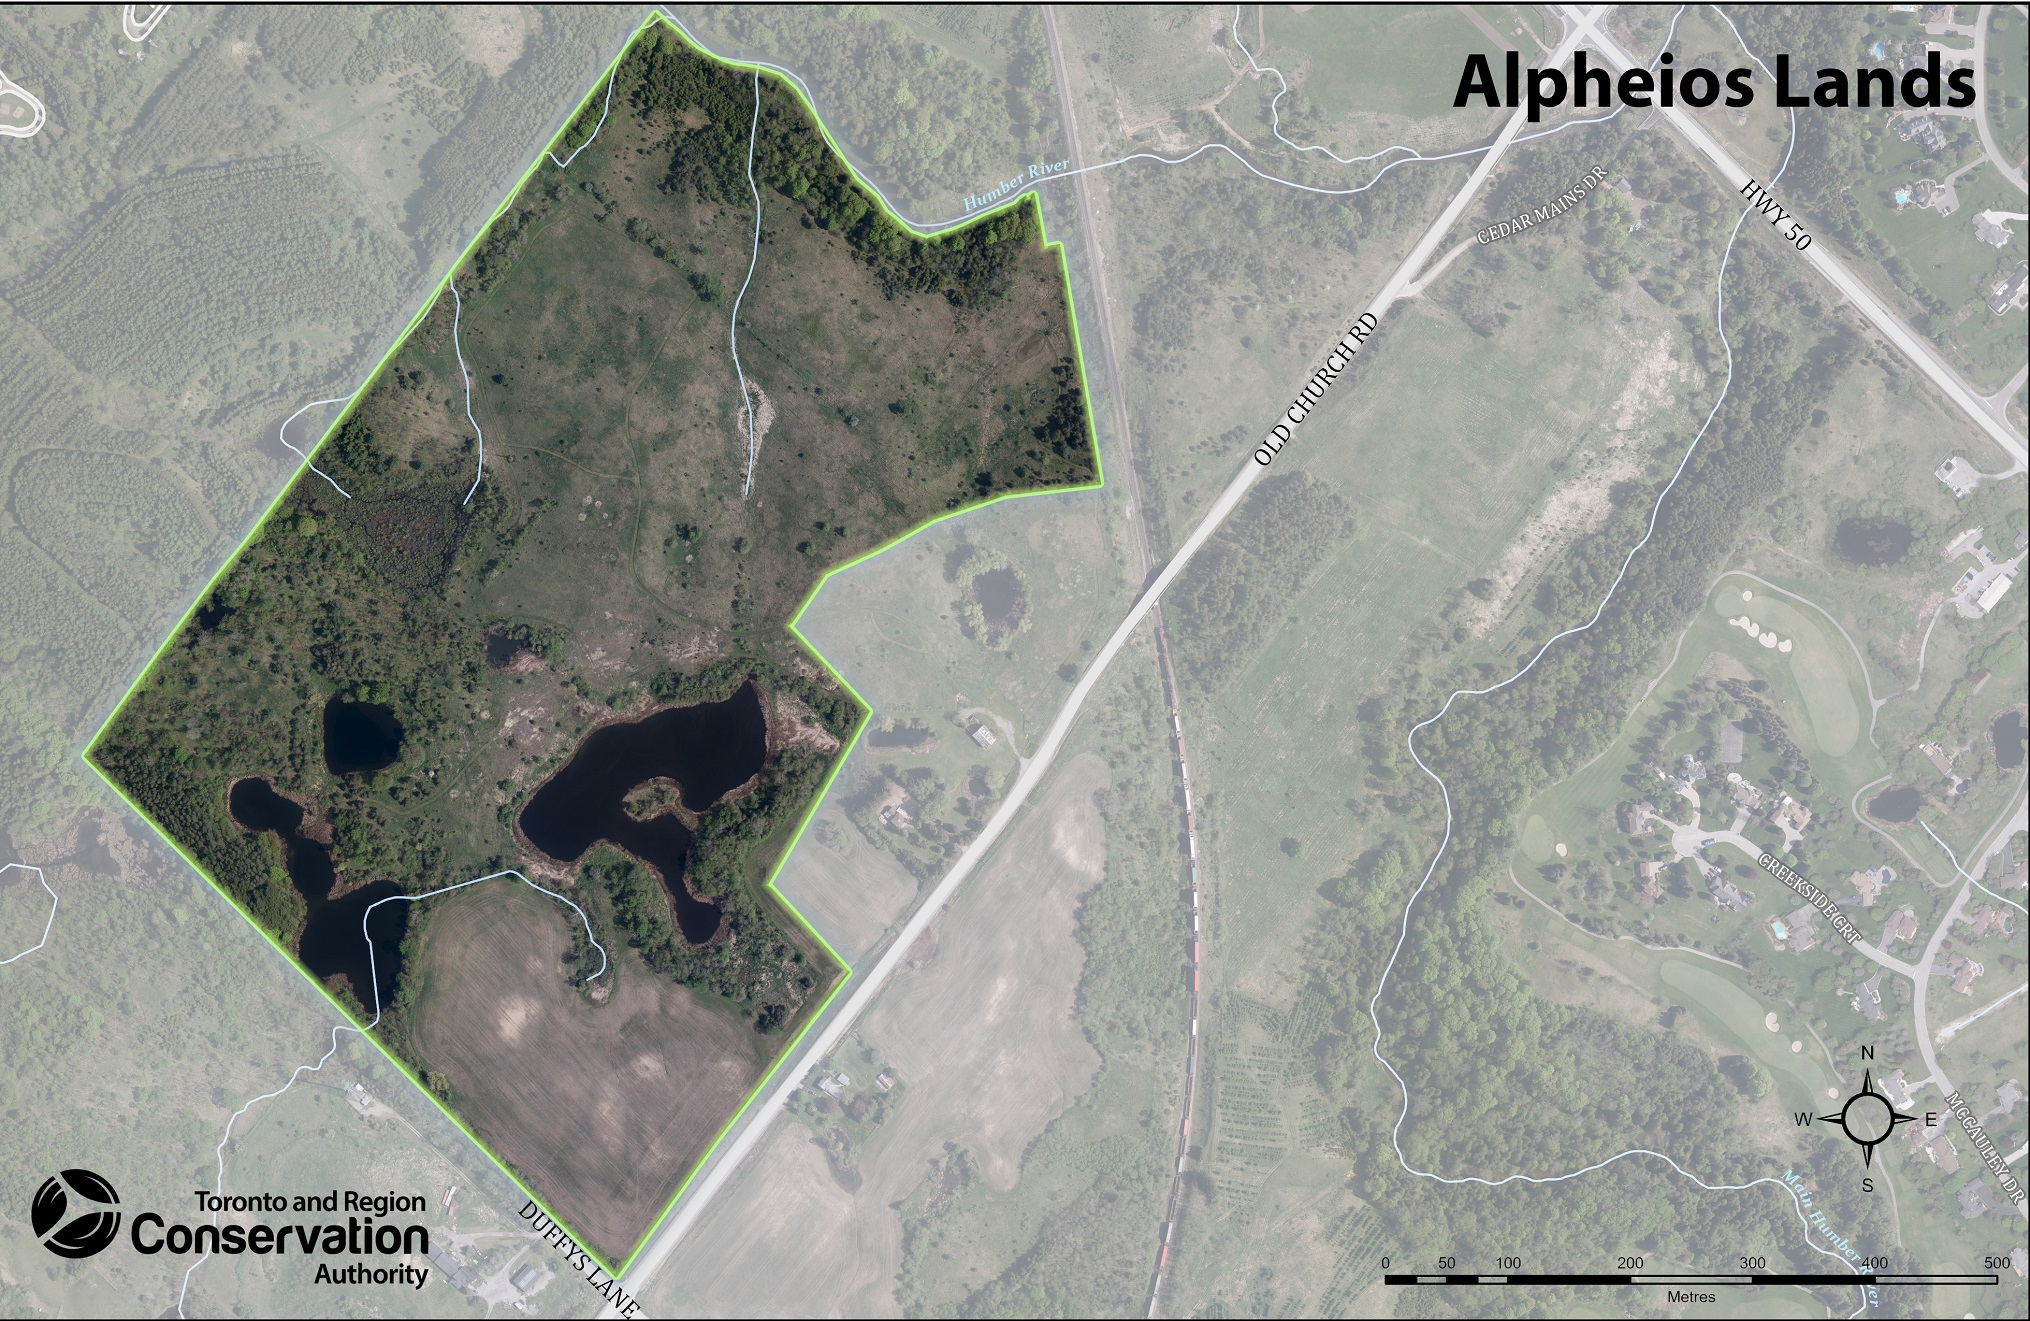 map of Alpheios Corporation land parcel acquired by TRCA